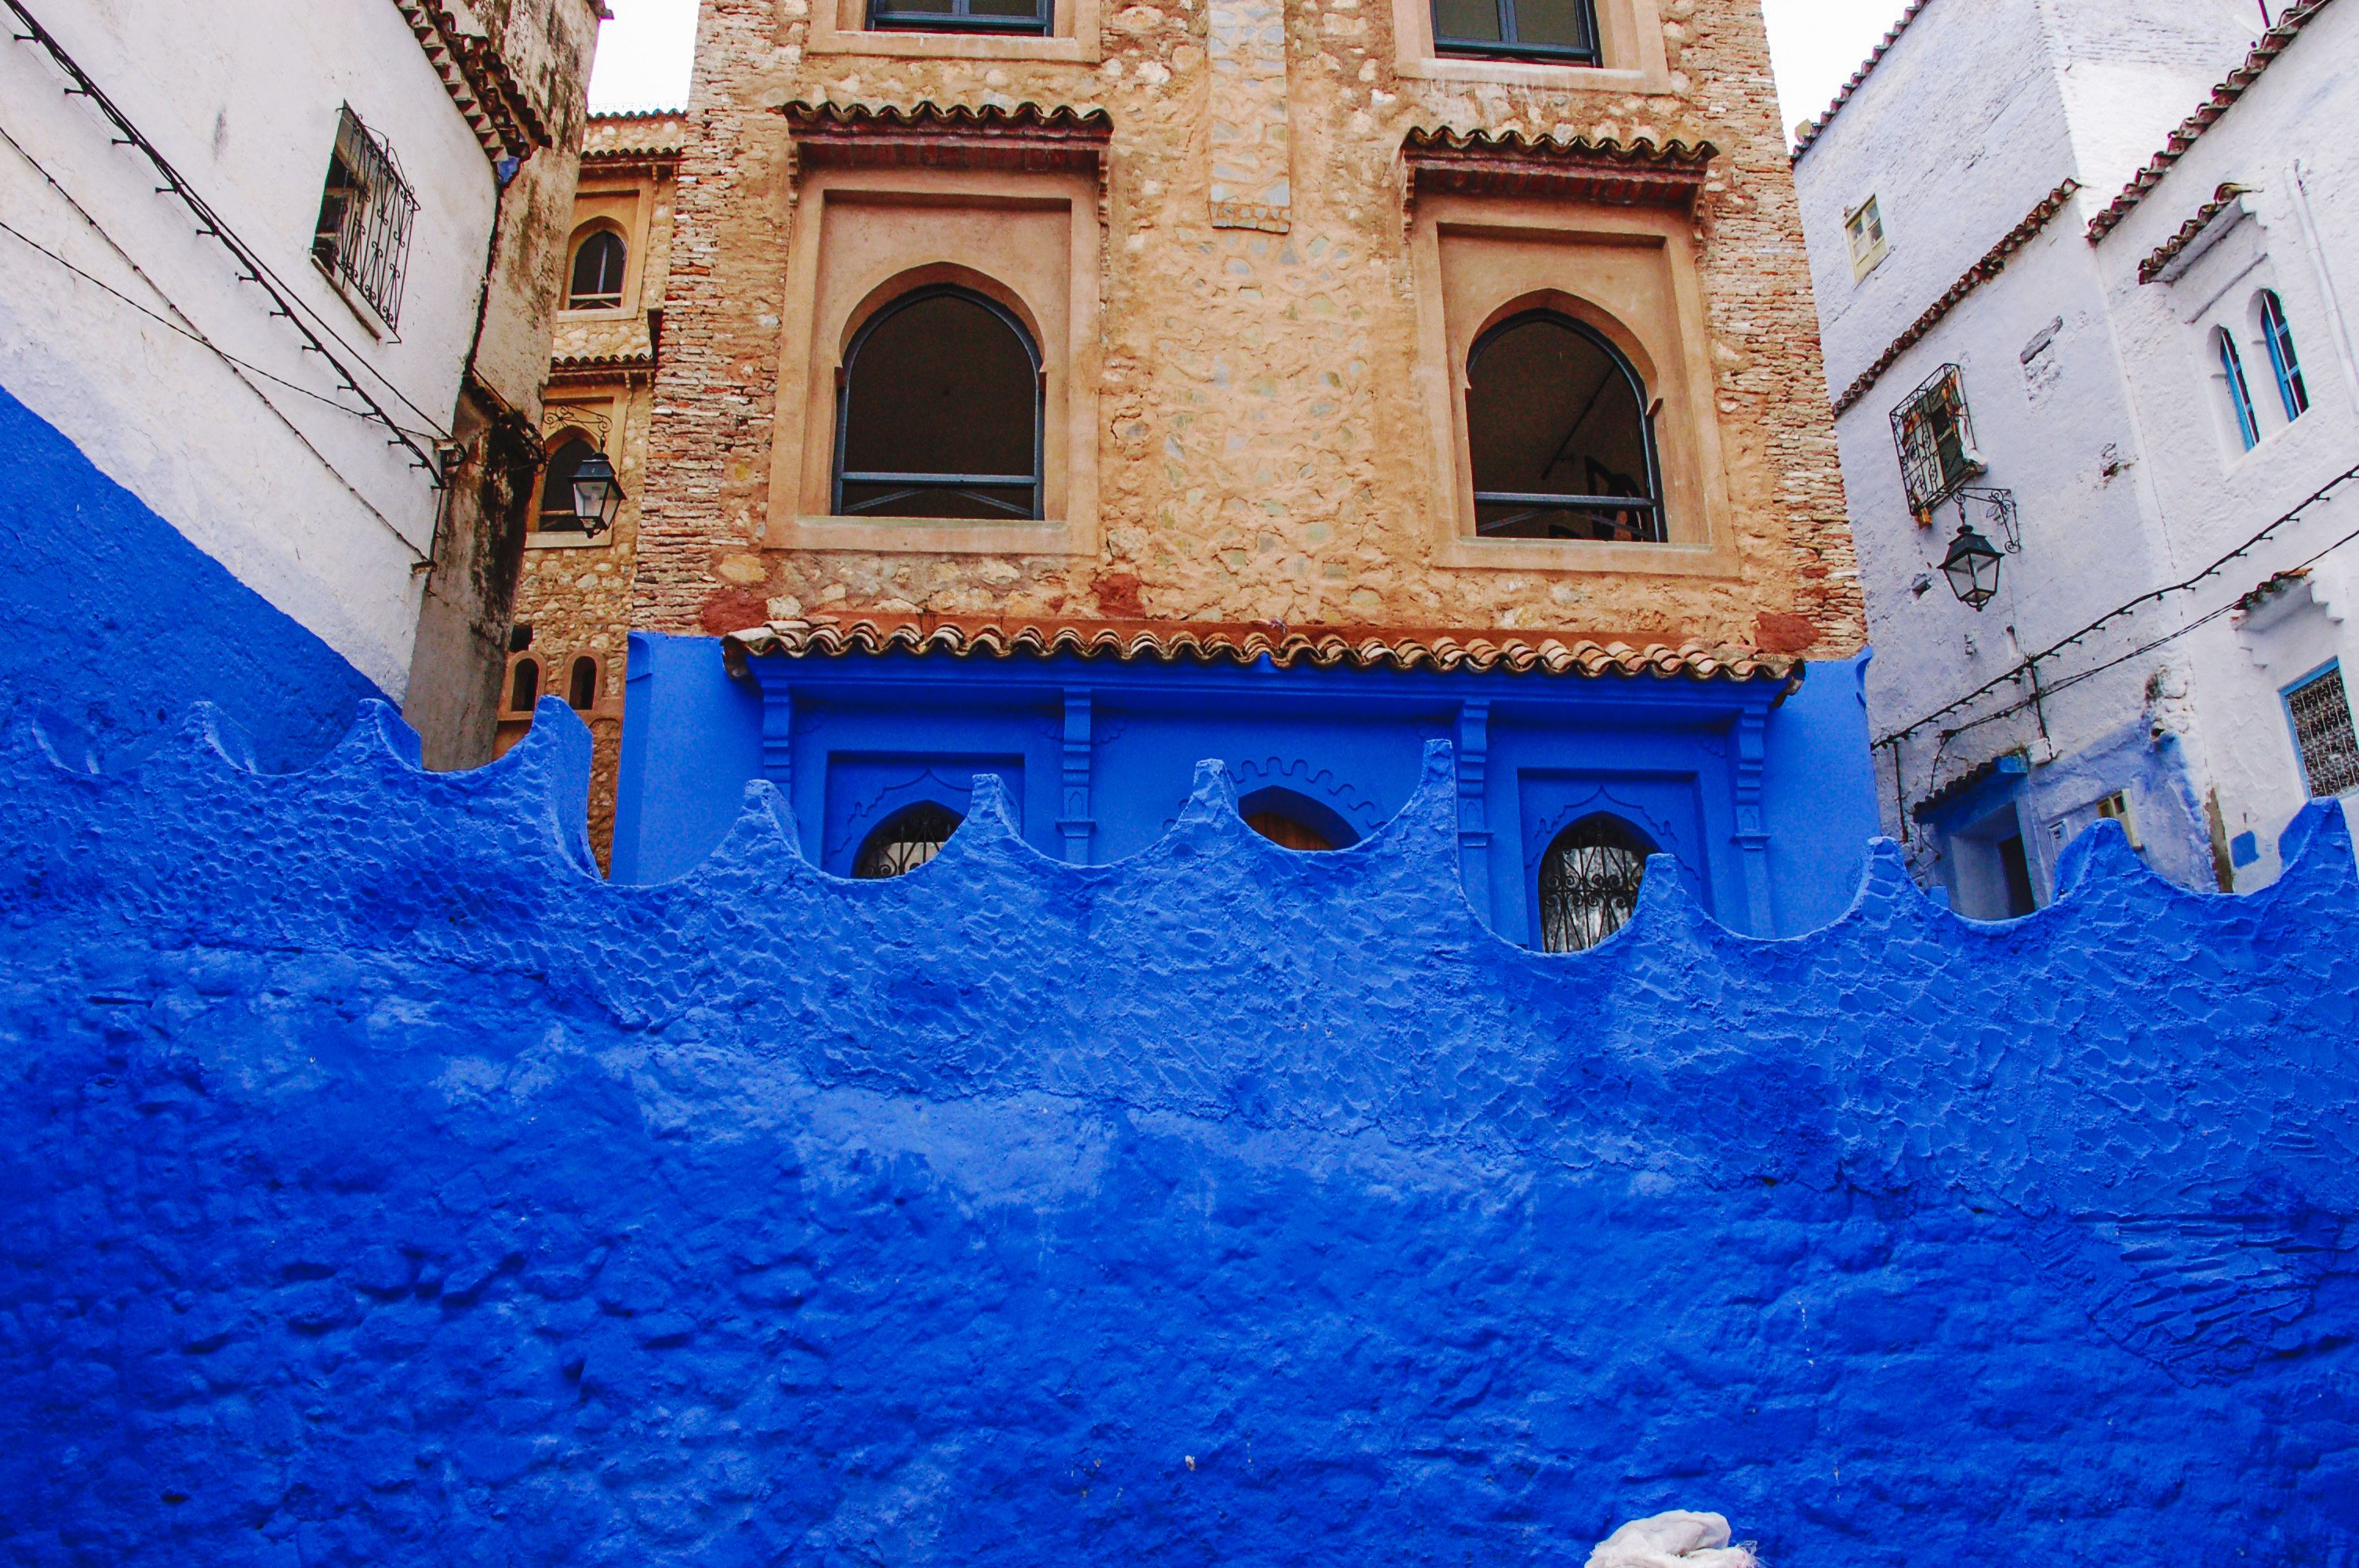 A Travel Guide to Chefchaouen, Morocco